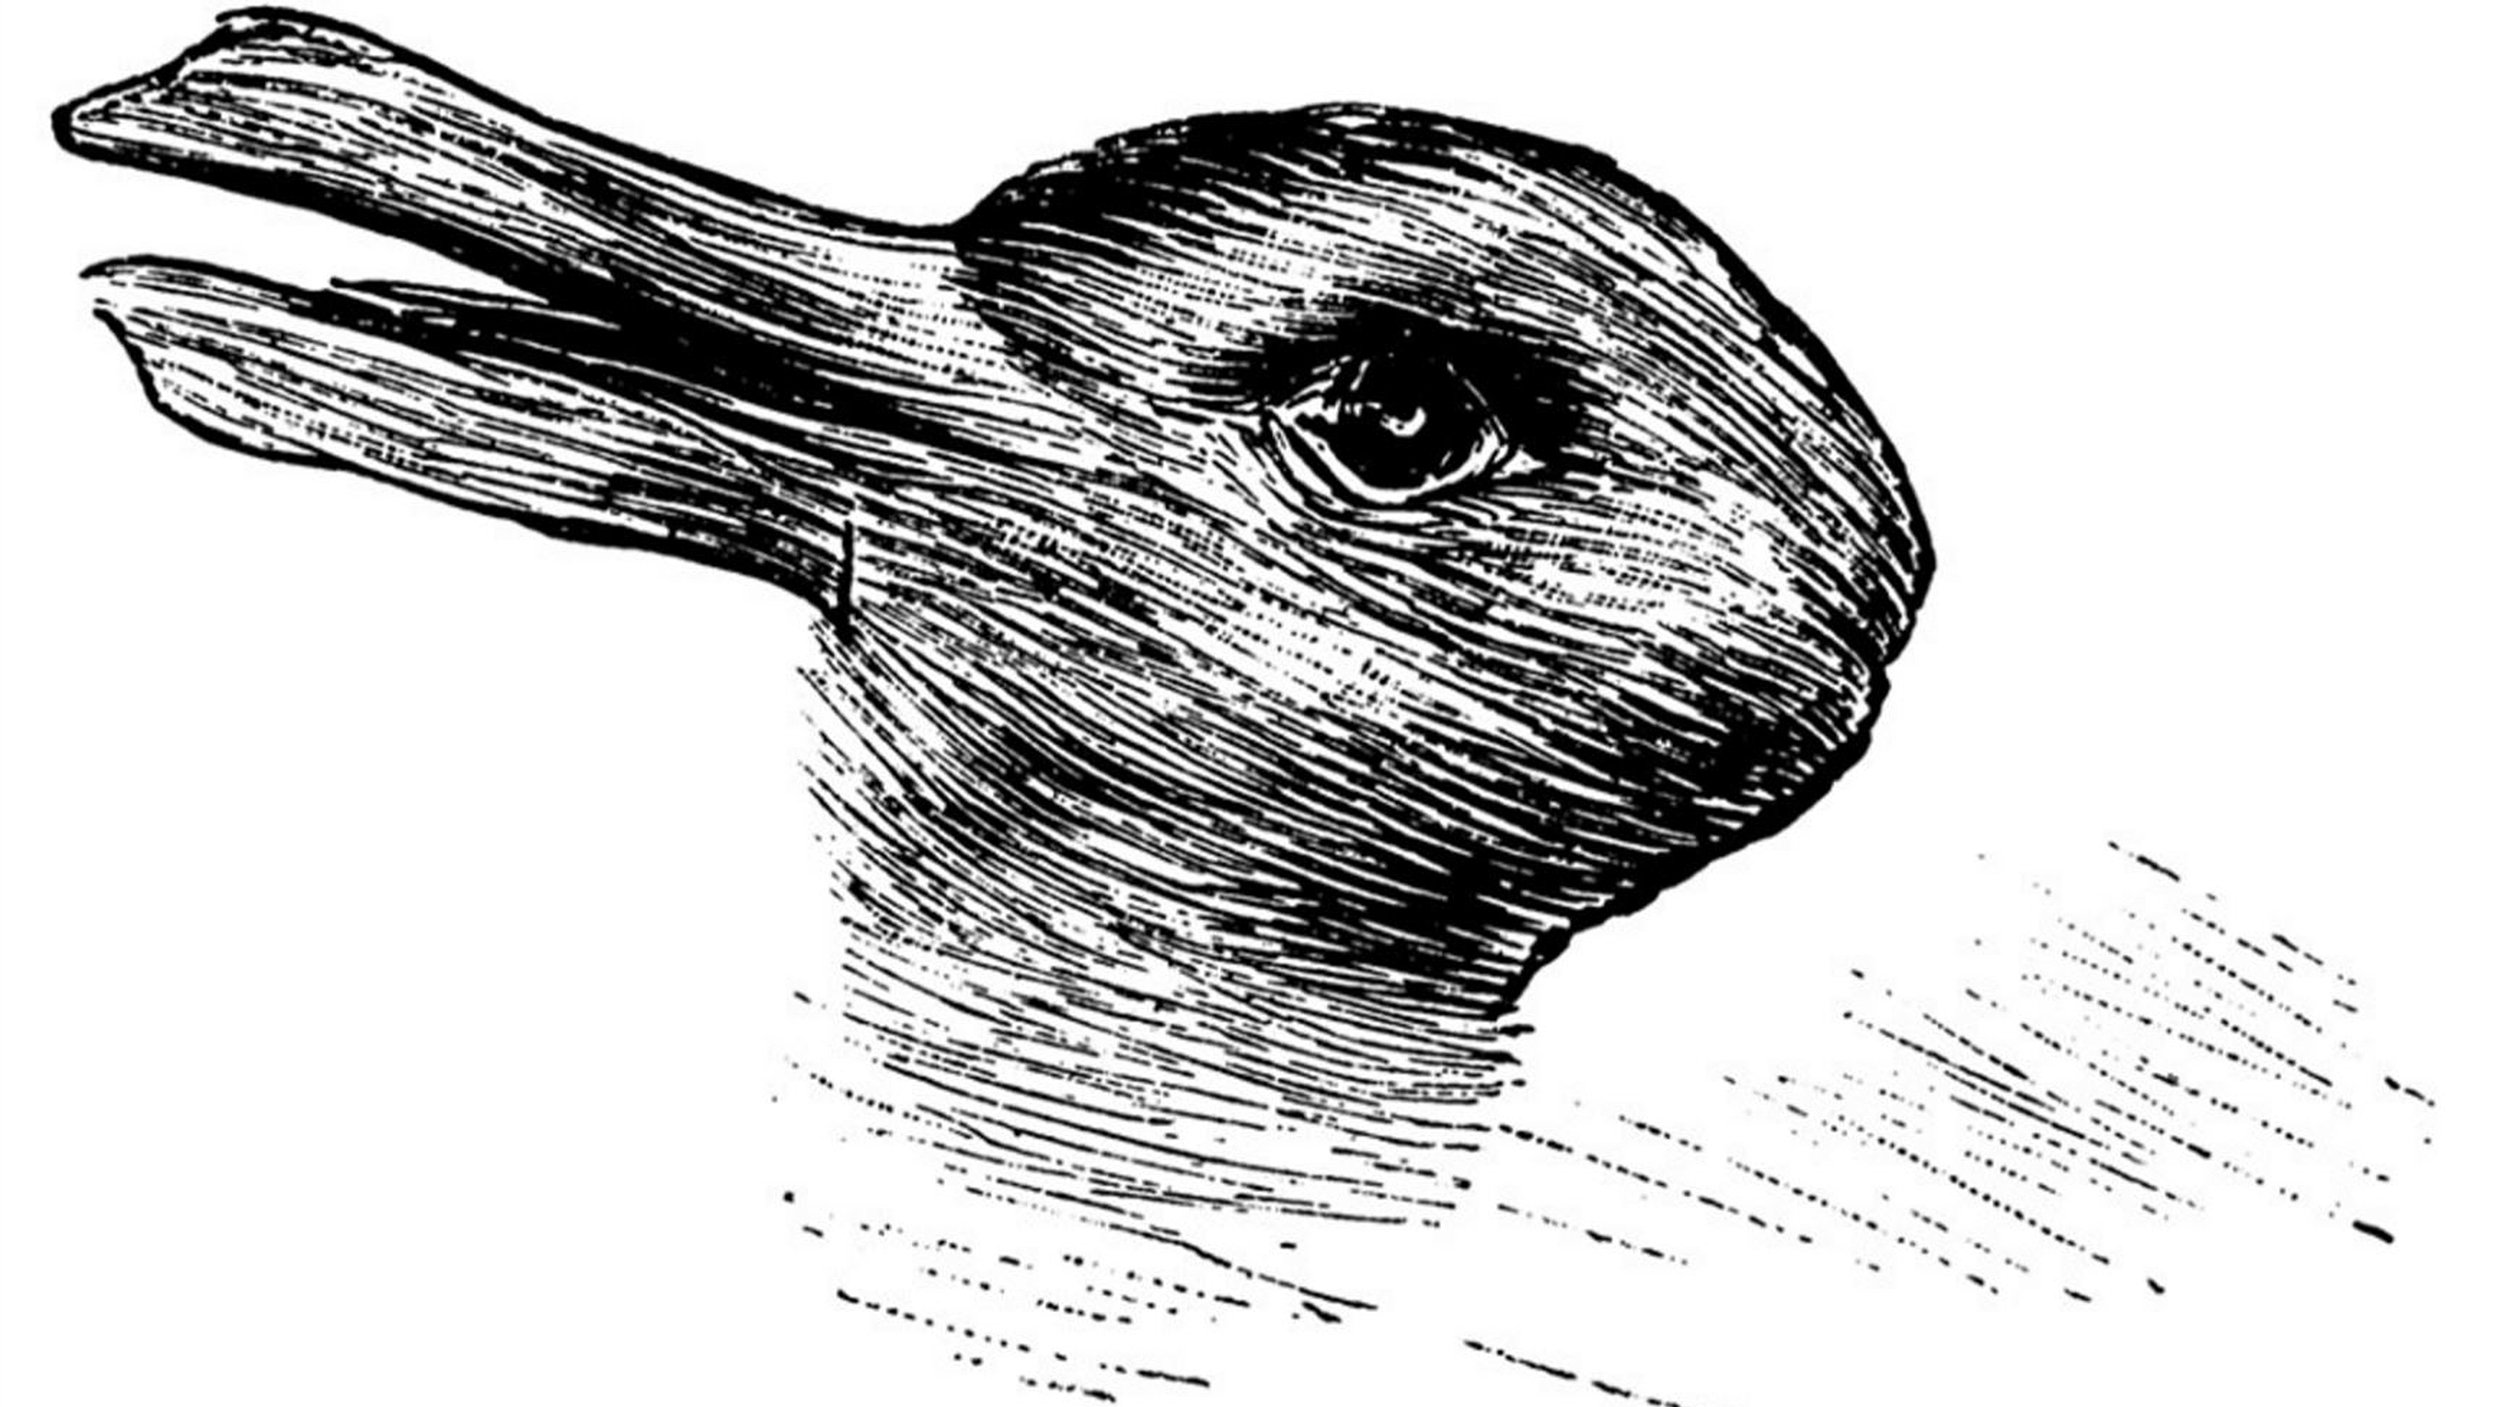 Rabbit Or Duck? This 124yearold Drawing Has Both If You Can Spot Them   Today